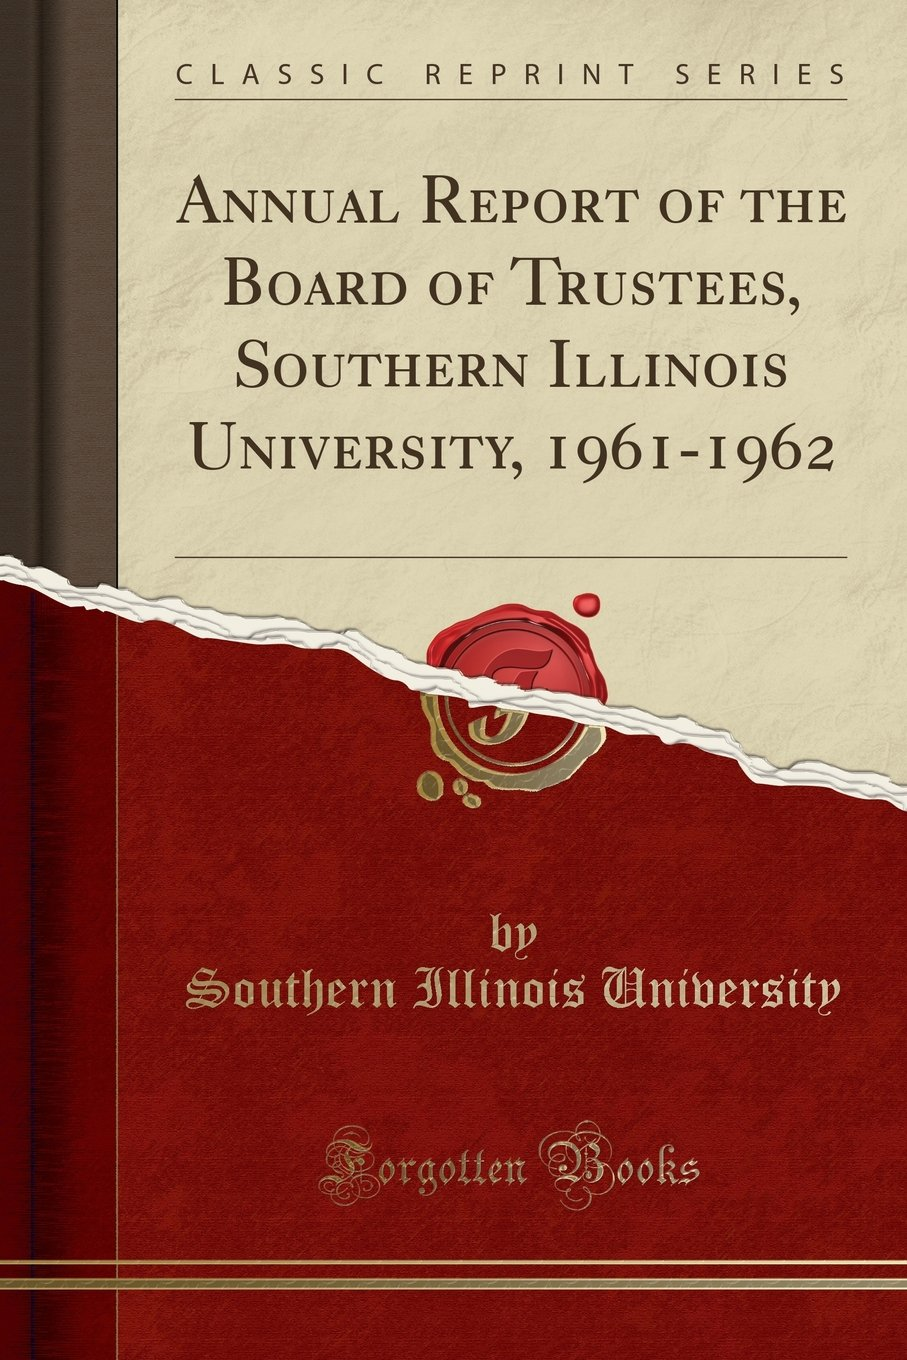 Annual Report of the Board of Trustees, Southern Illinois University, 1961-1962 (Classic Reprint) pdf